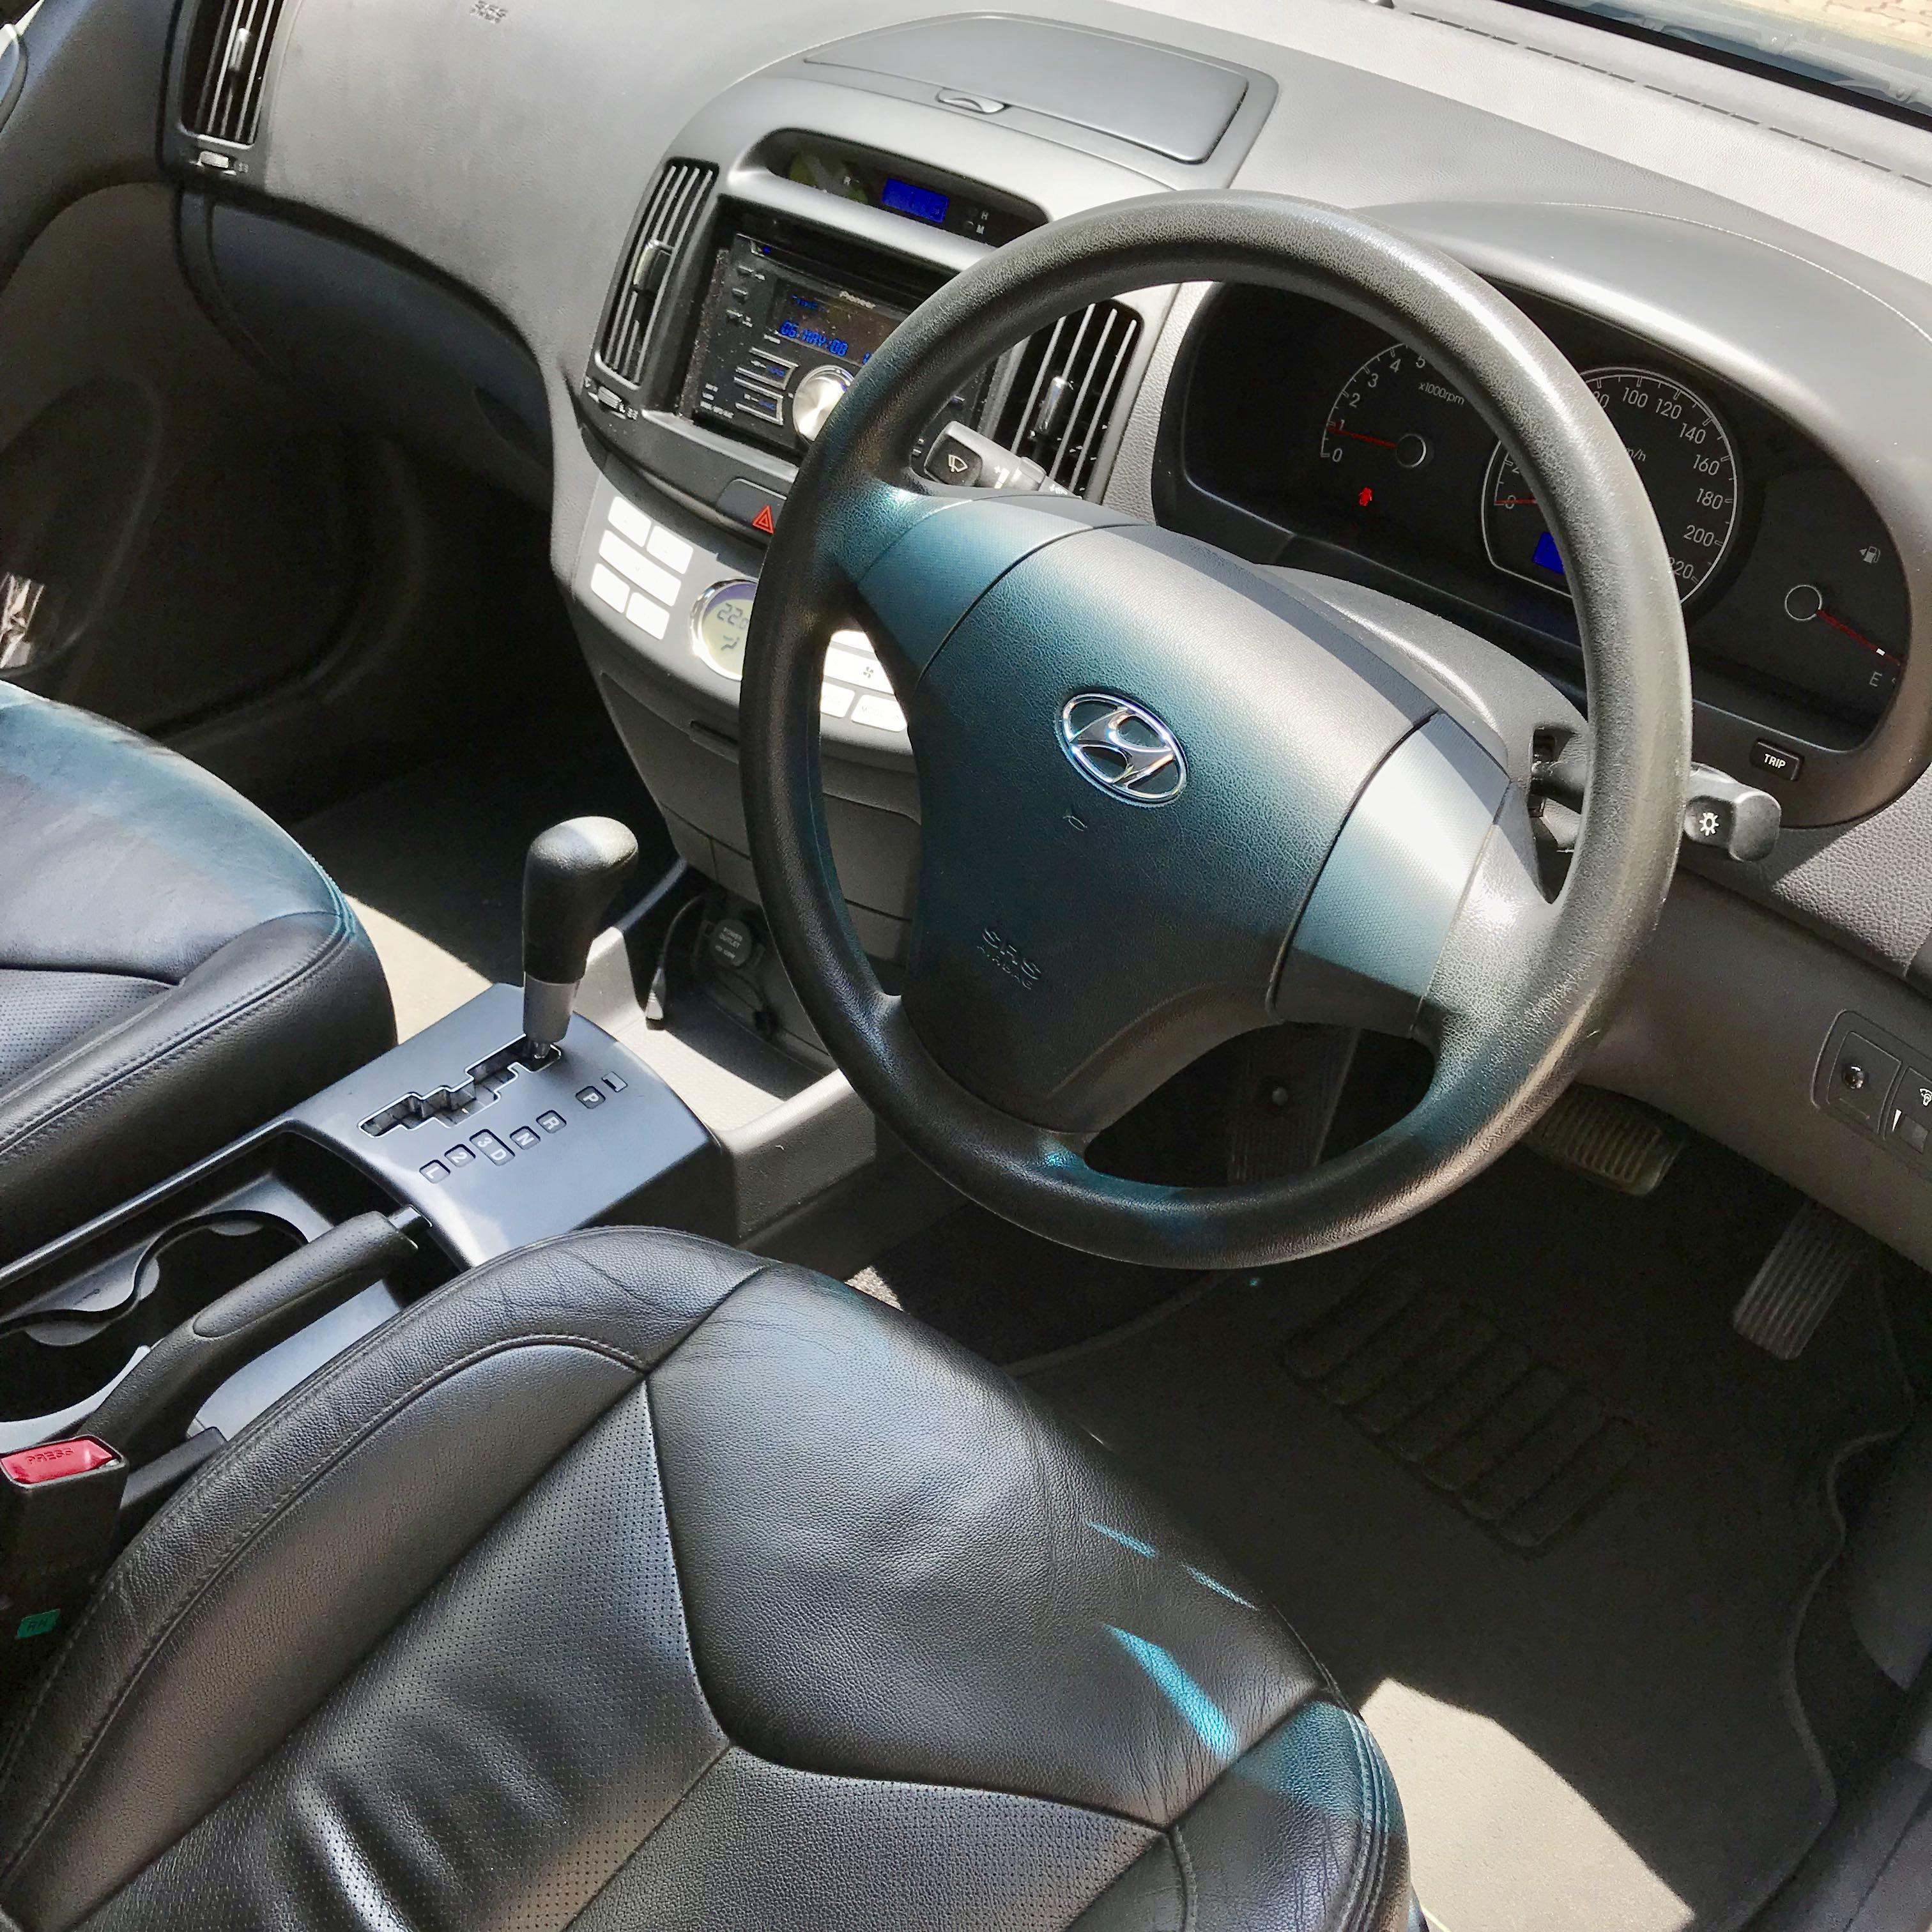 Avante for Rental Driveaway with $210 only!